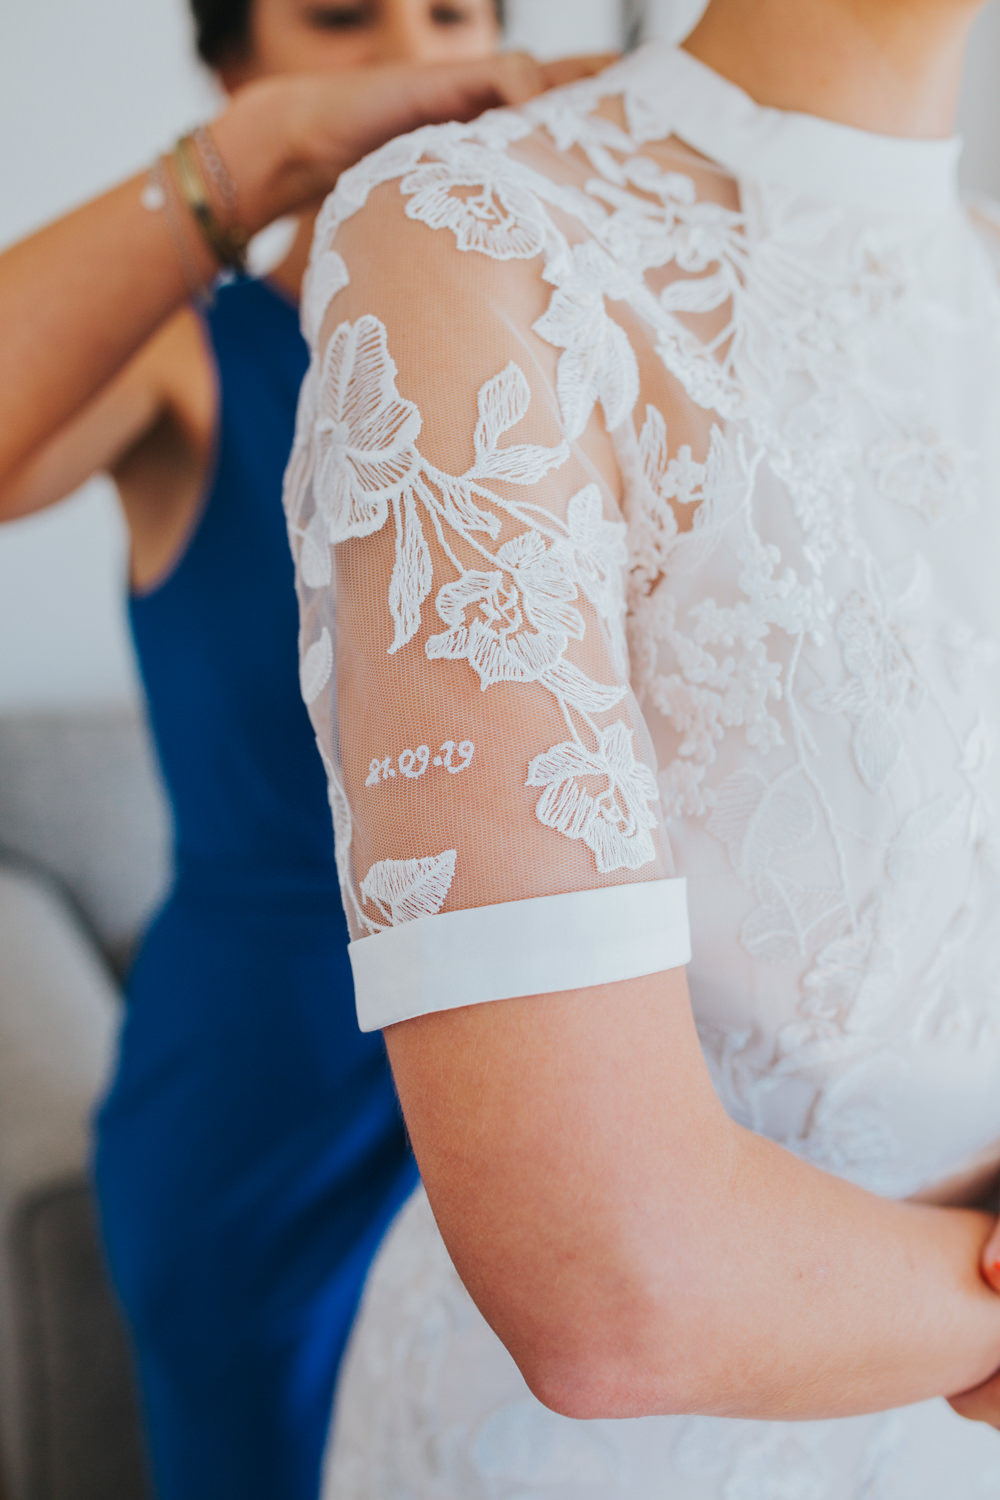 Dress Gown Bride Bridal Lace Sleeves Phase Eight Personalised Embroidered Thorpeness Country Club Wedding Charlotte Razzell Photography